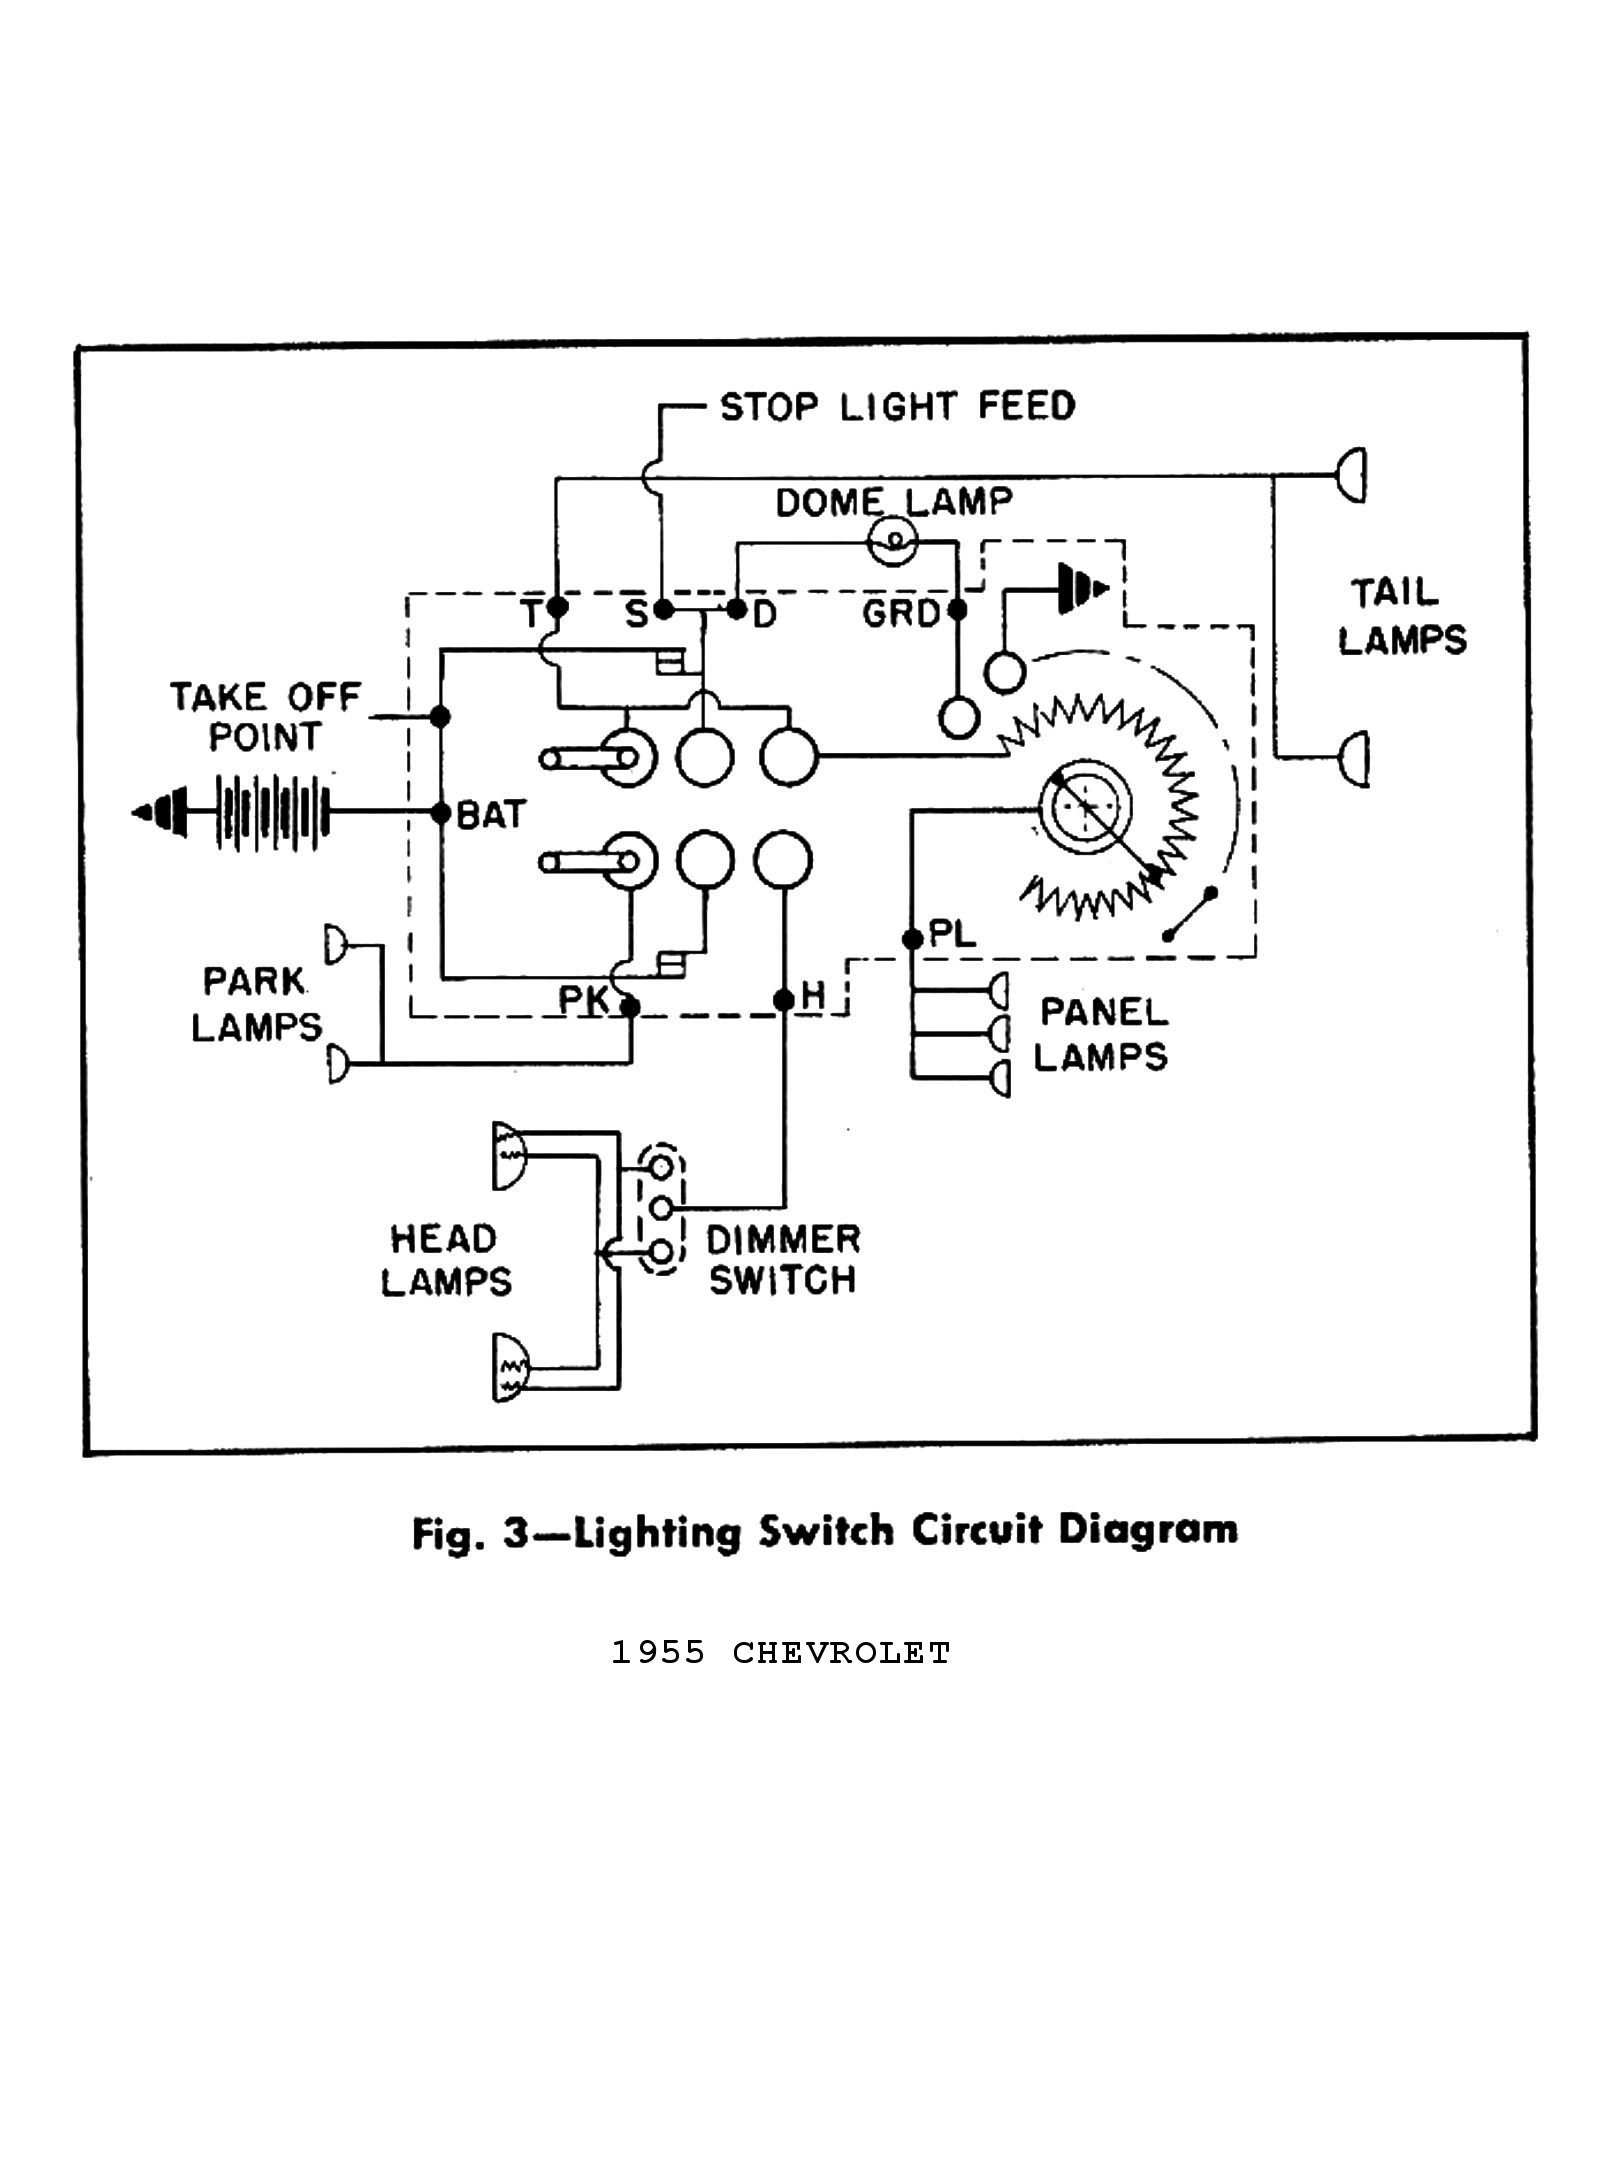 1958 Buick Wiring Diagram Opinions About 2003 Mini Cooper Headlight Light Switch On 59 The 1947 Present Chevrolet Gmc Truck Message Board Network Rendezvous Regal